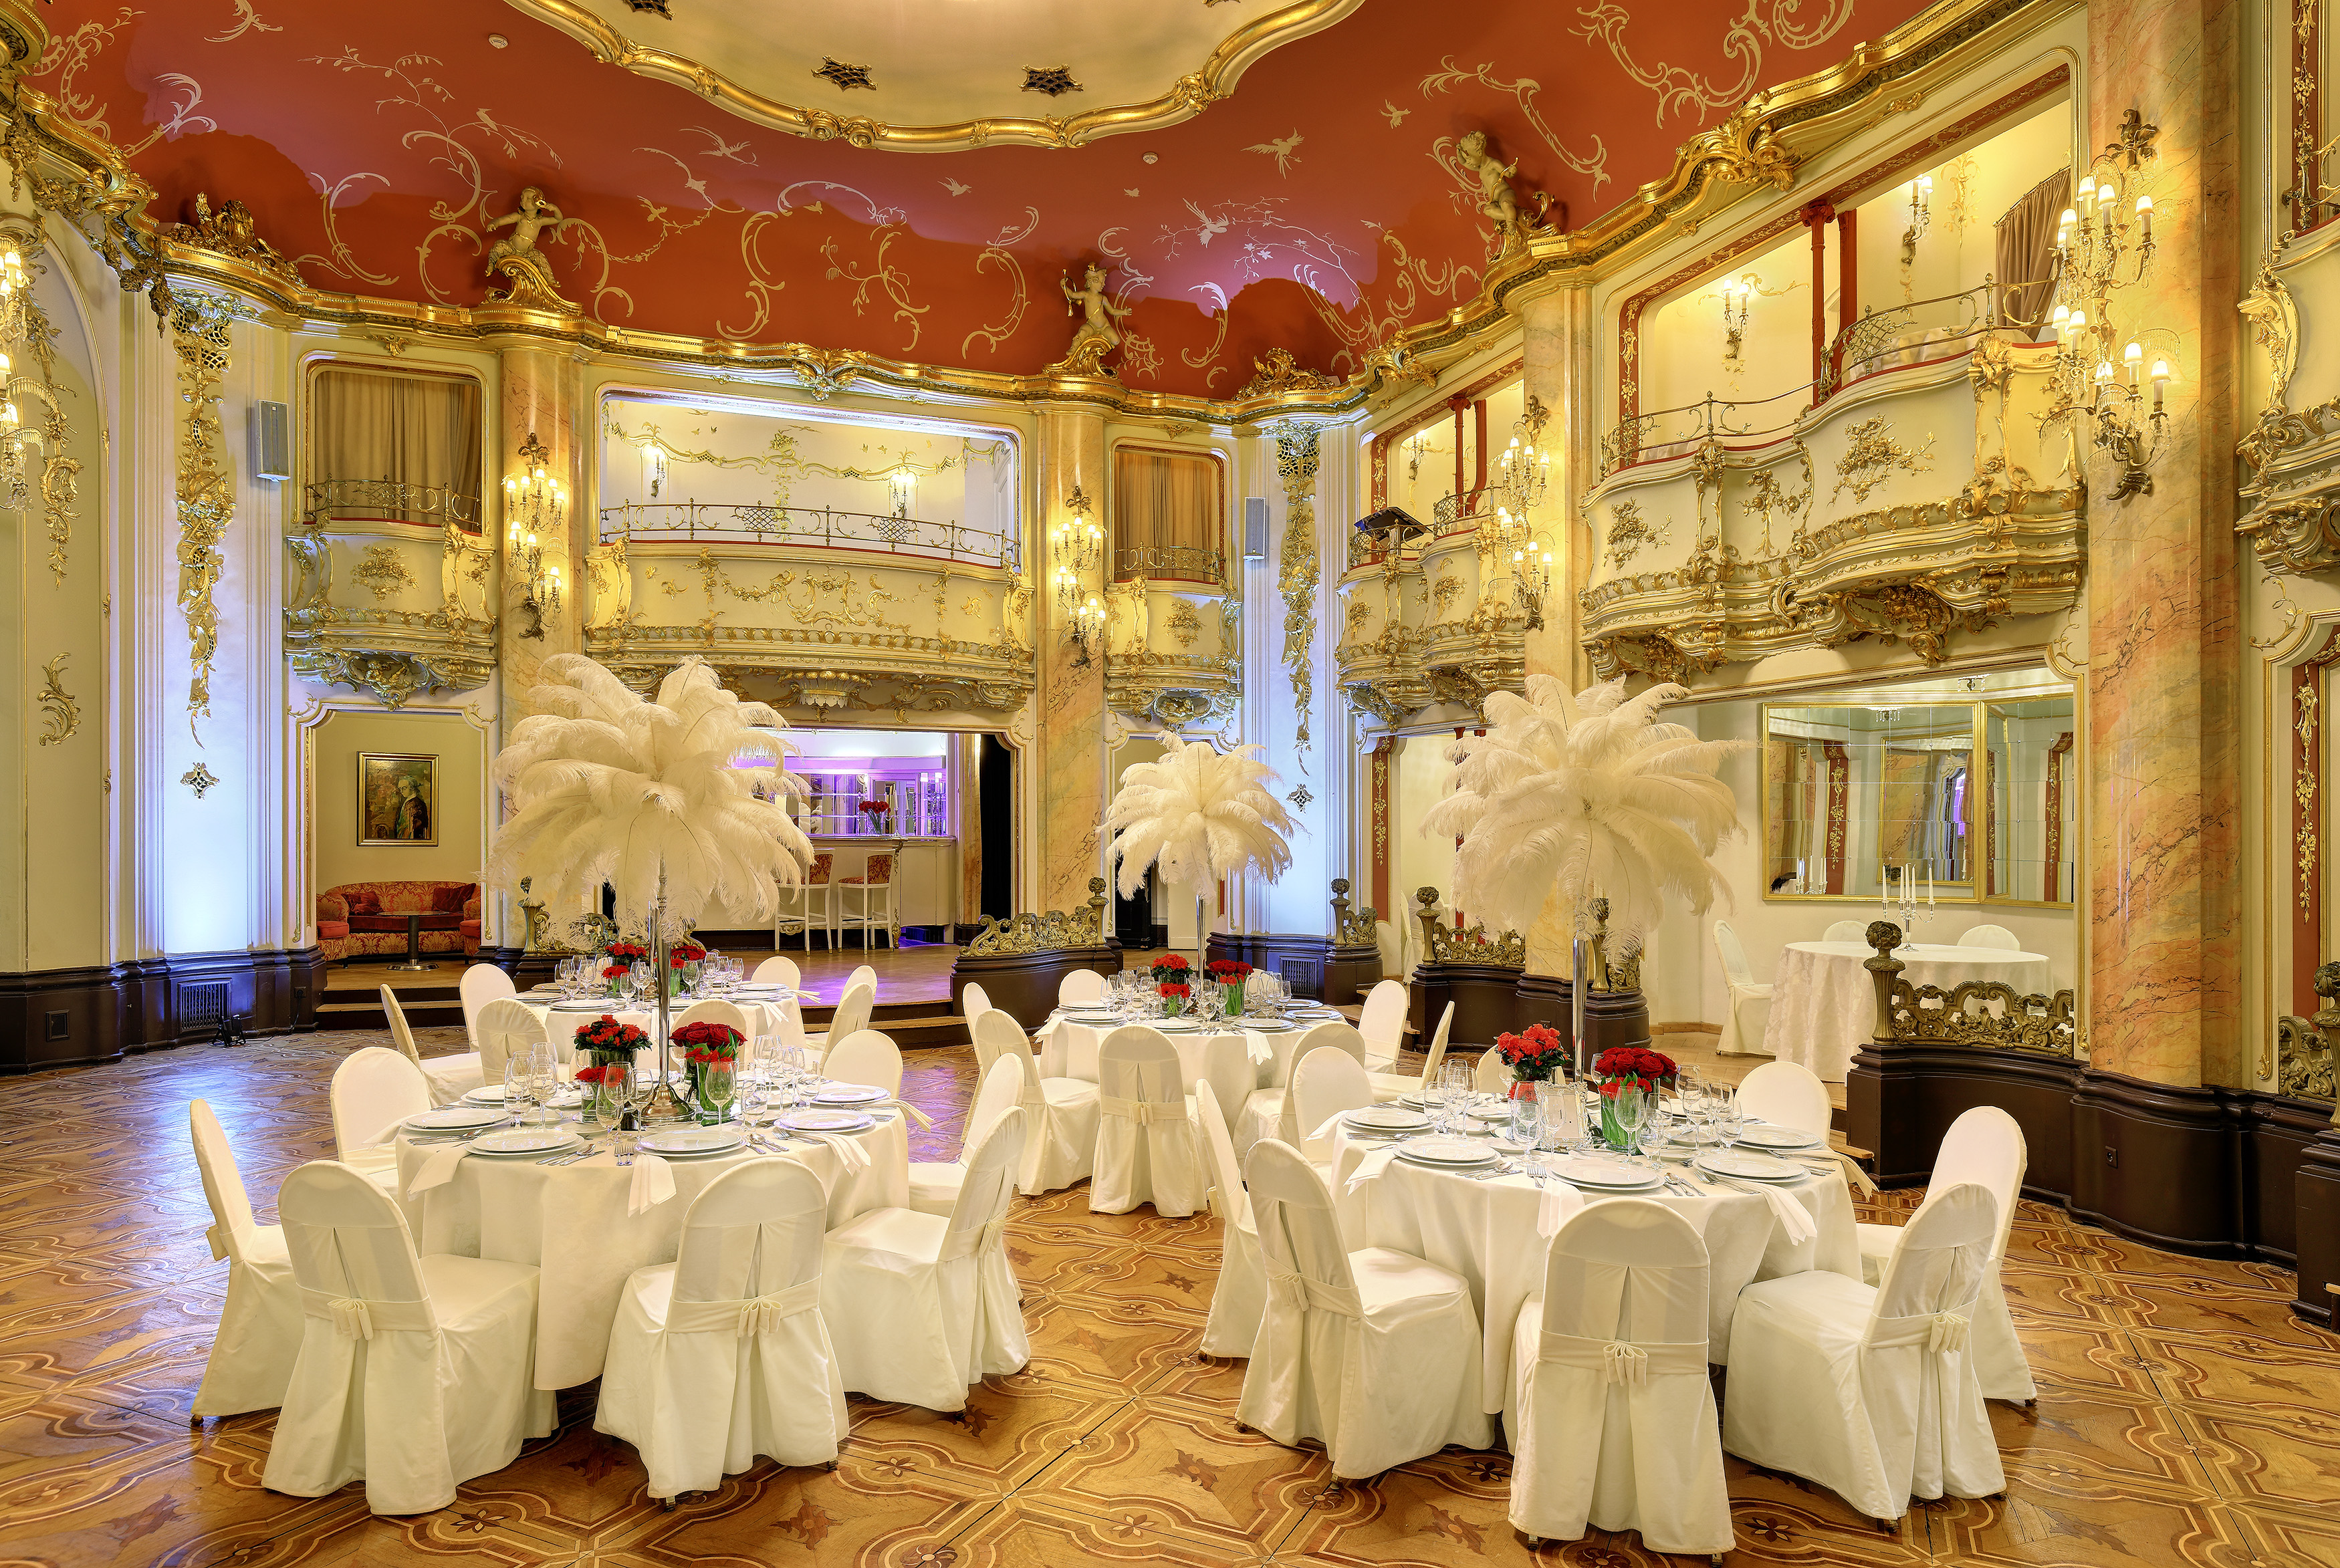 Wedding venues grand hotel bohemia for Grand hotel bohemia prague restaurant